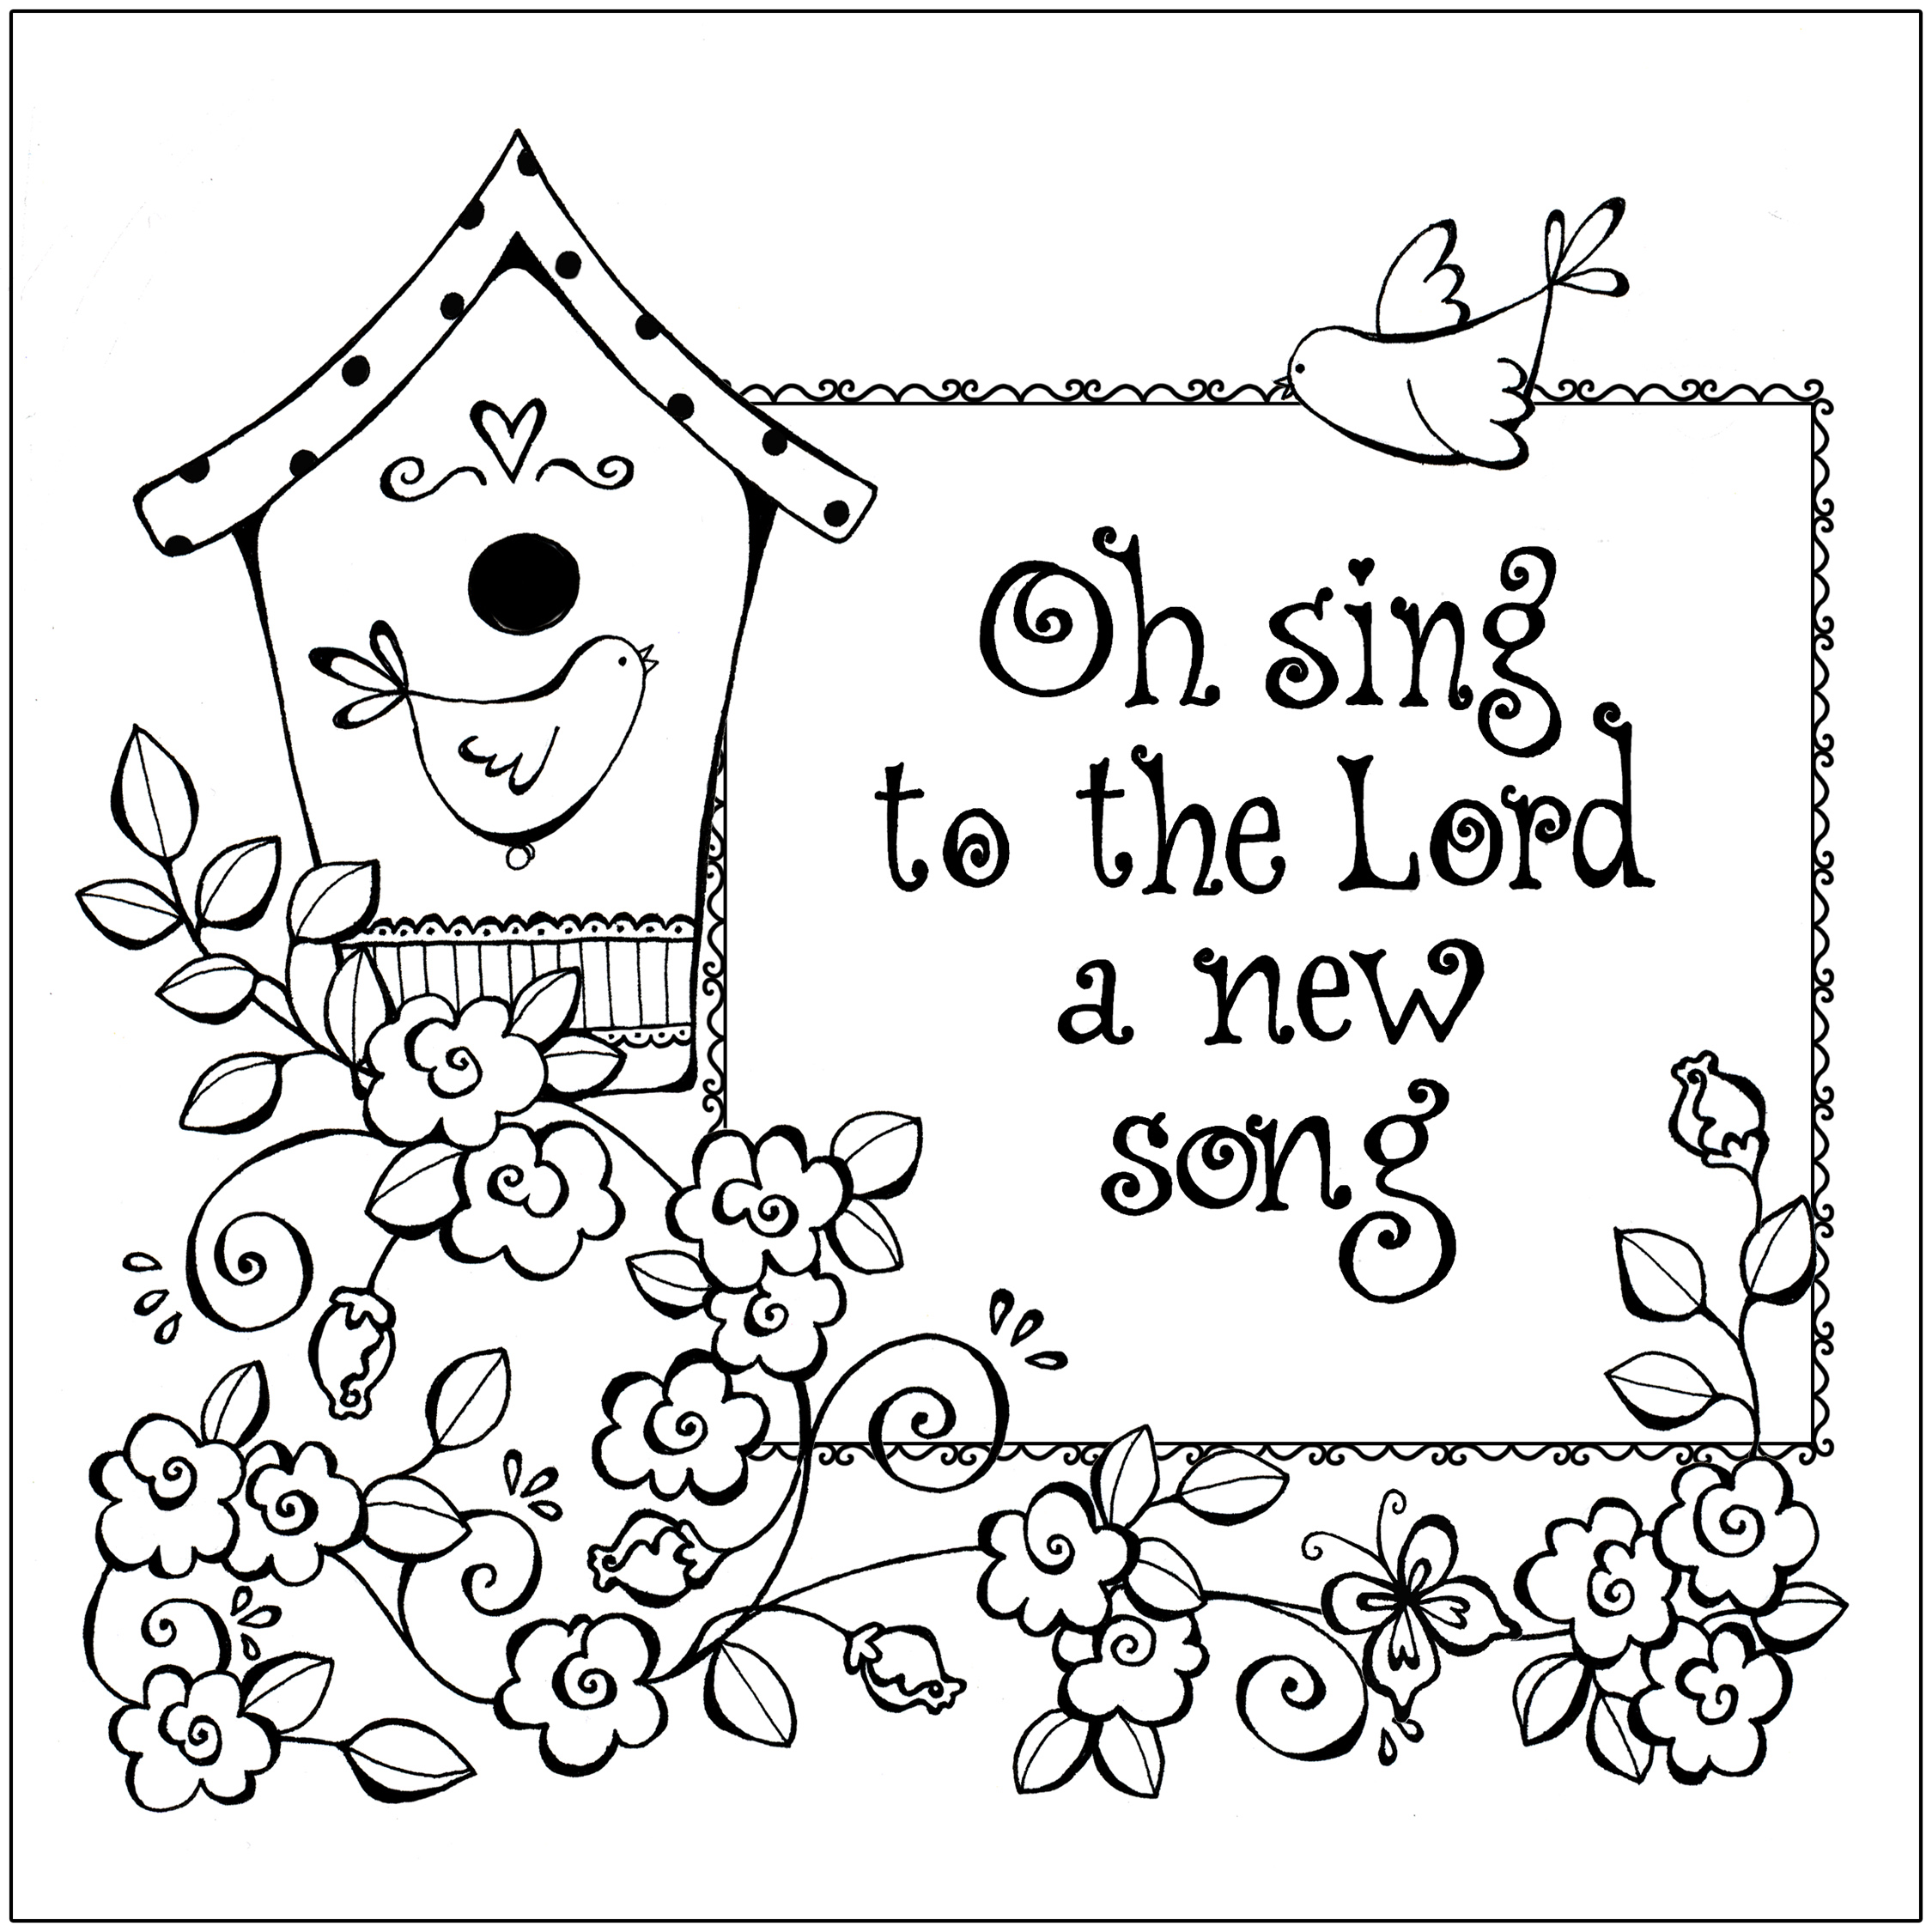 christian children coloring pages free - photo#2